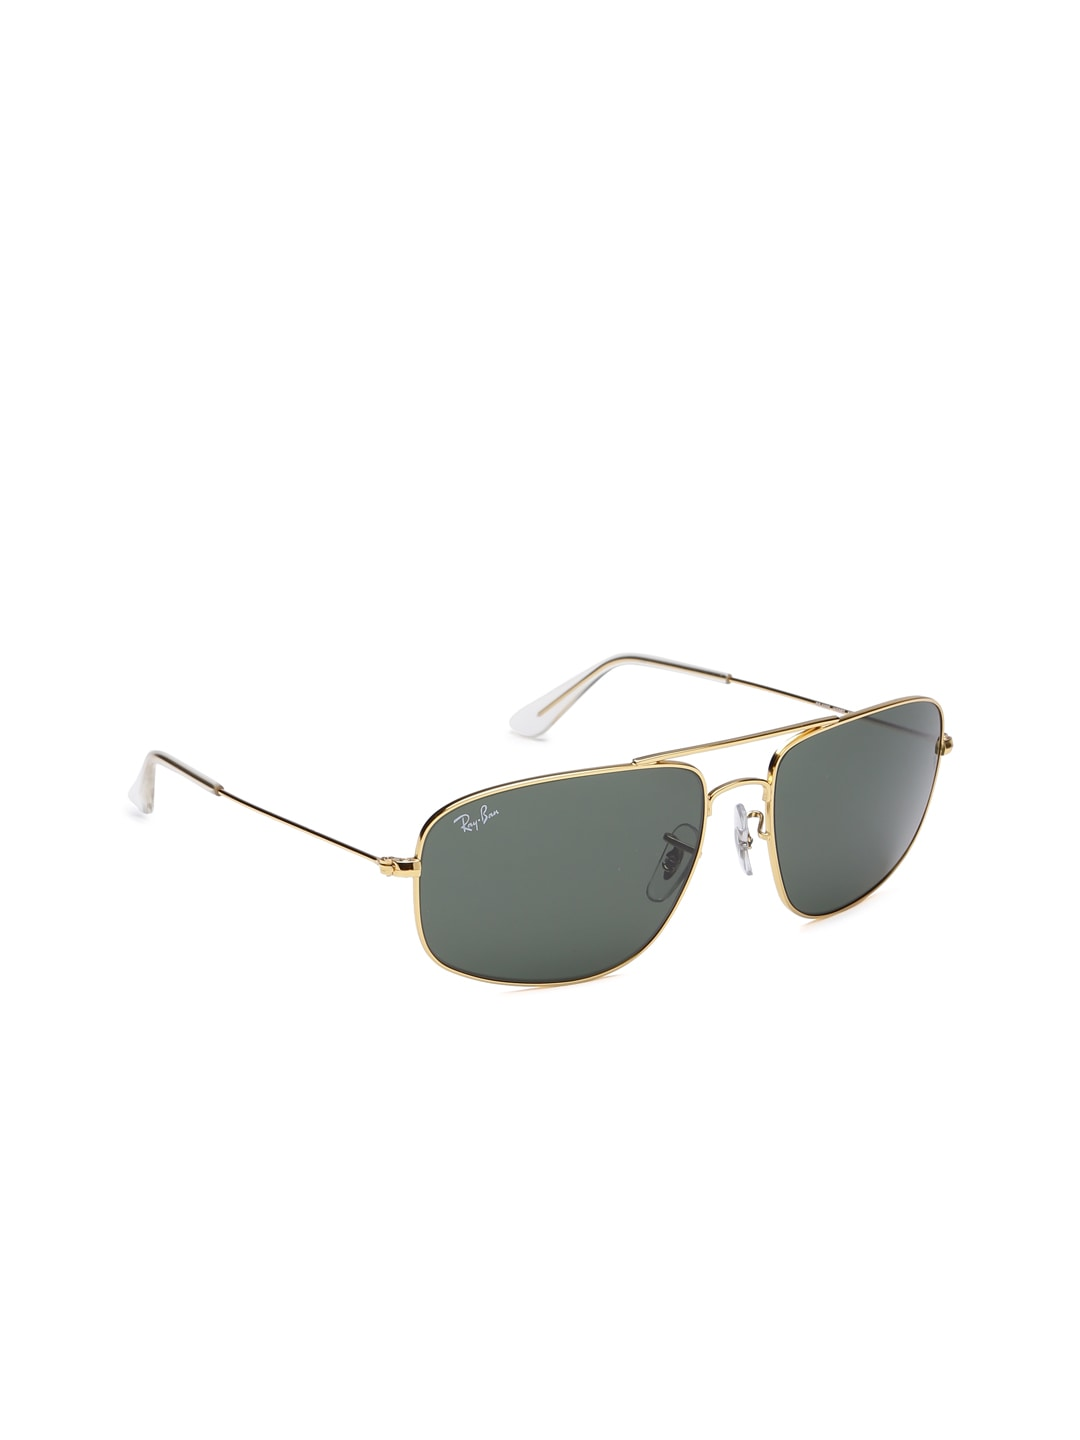 9f50f388859a Ray-Ban® Sunglasses - Buy Ray-Ban® sunglasses Online